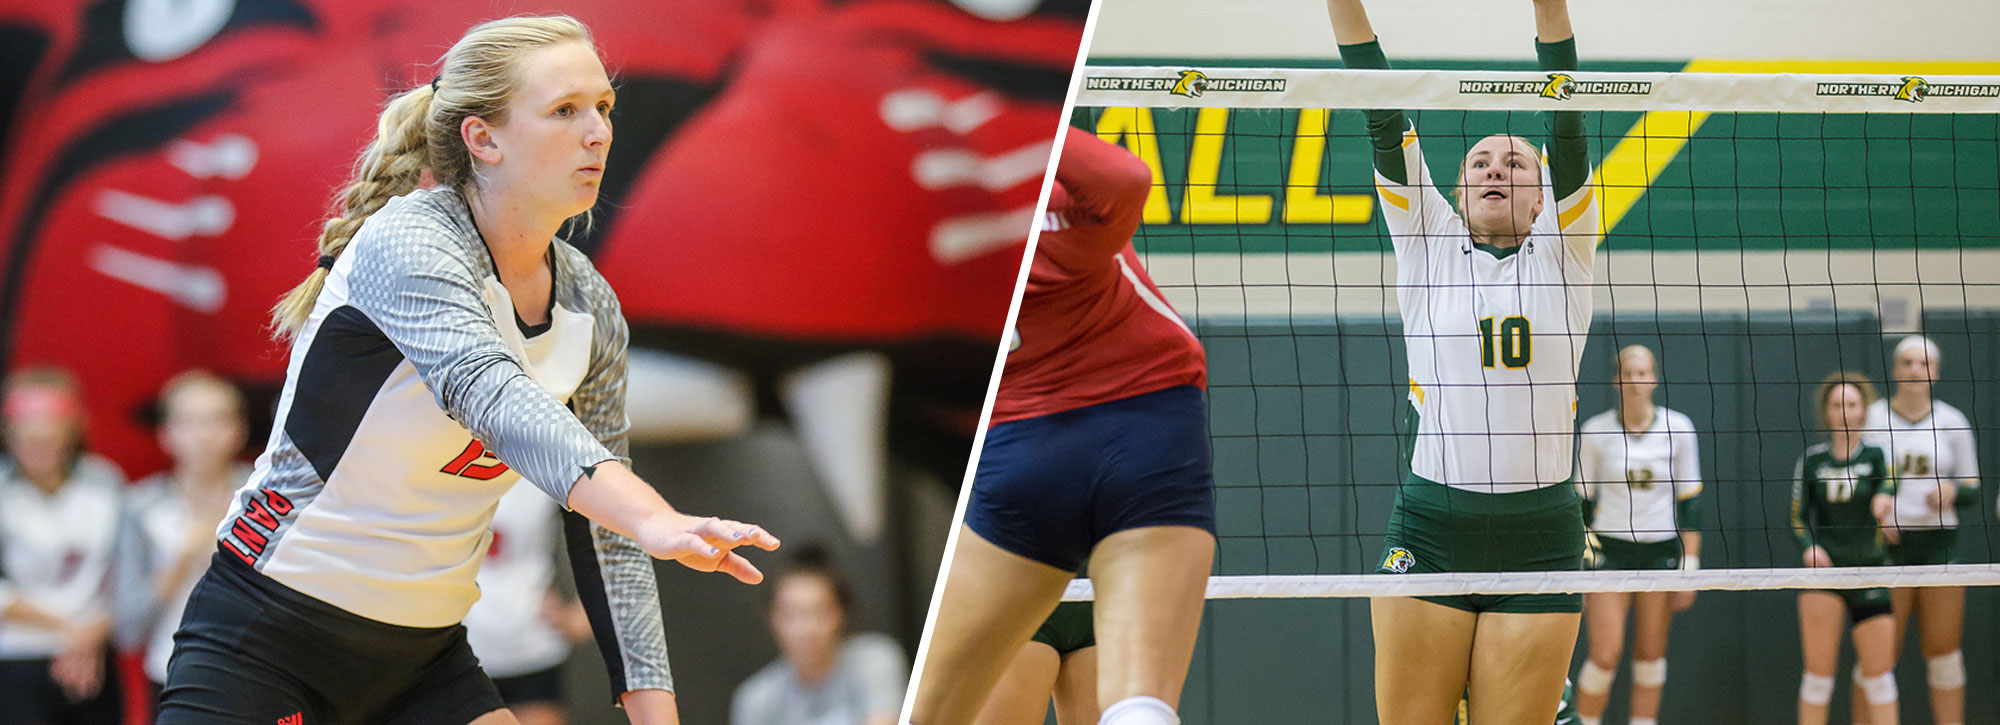 Davenport's Dill, Northern Michigan's Kuehn Tabbed GLIAC Players of the Week